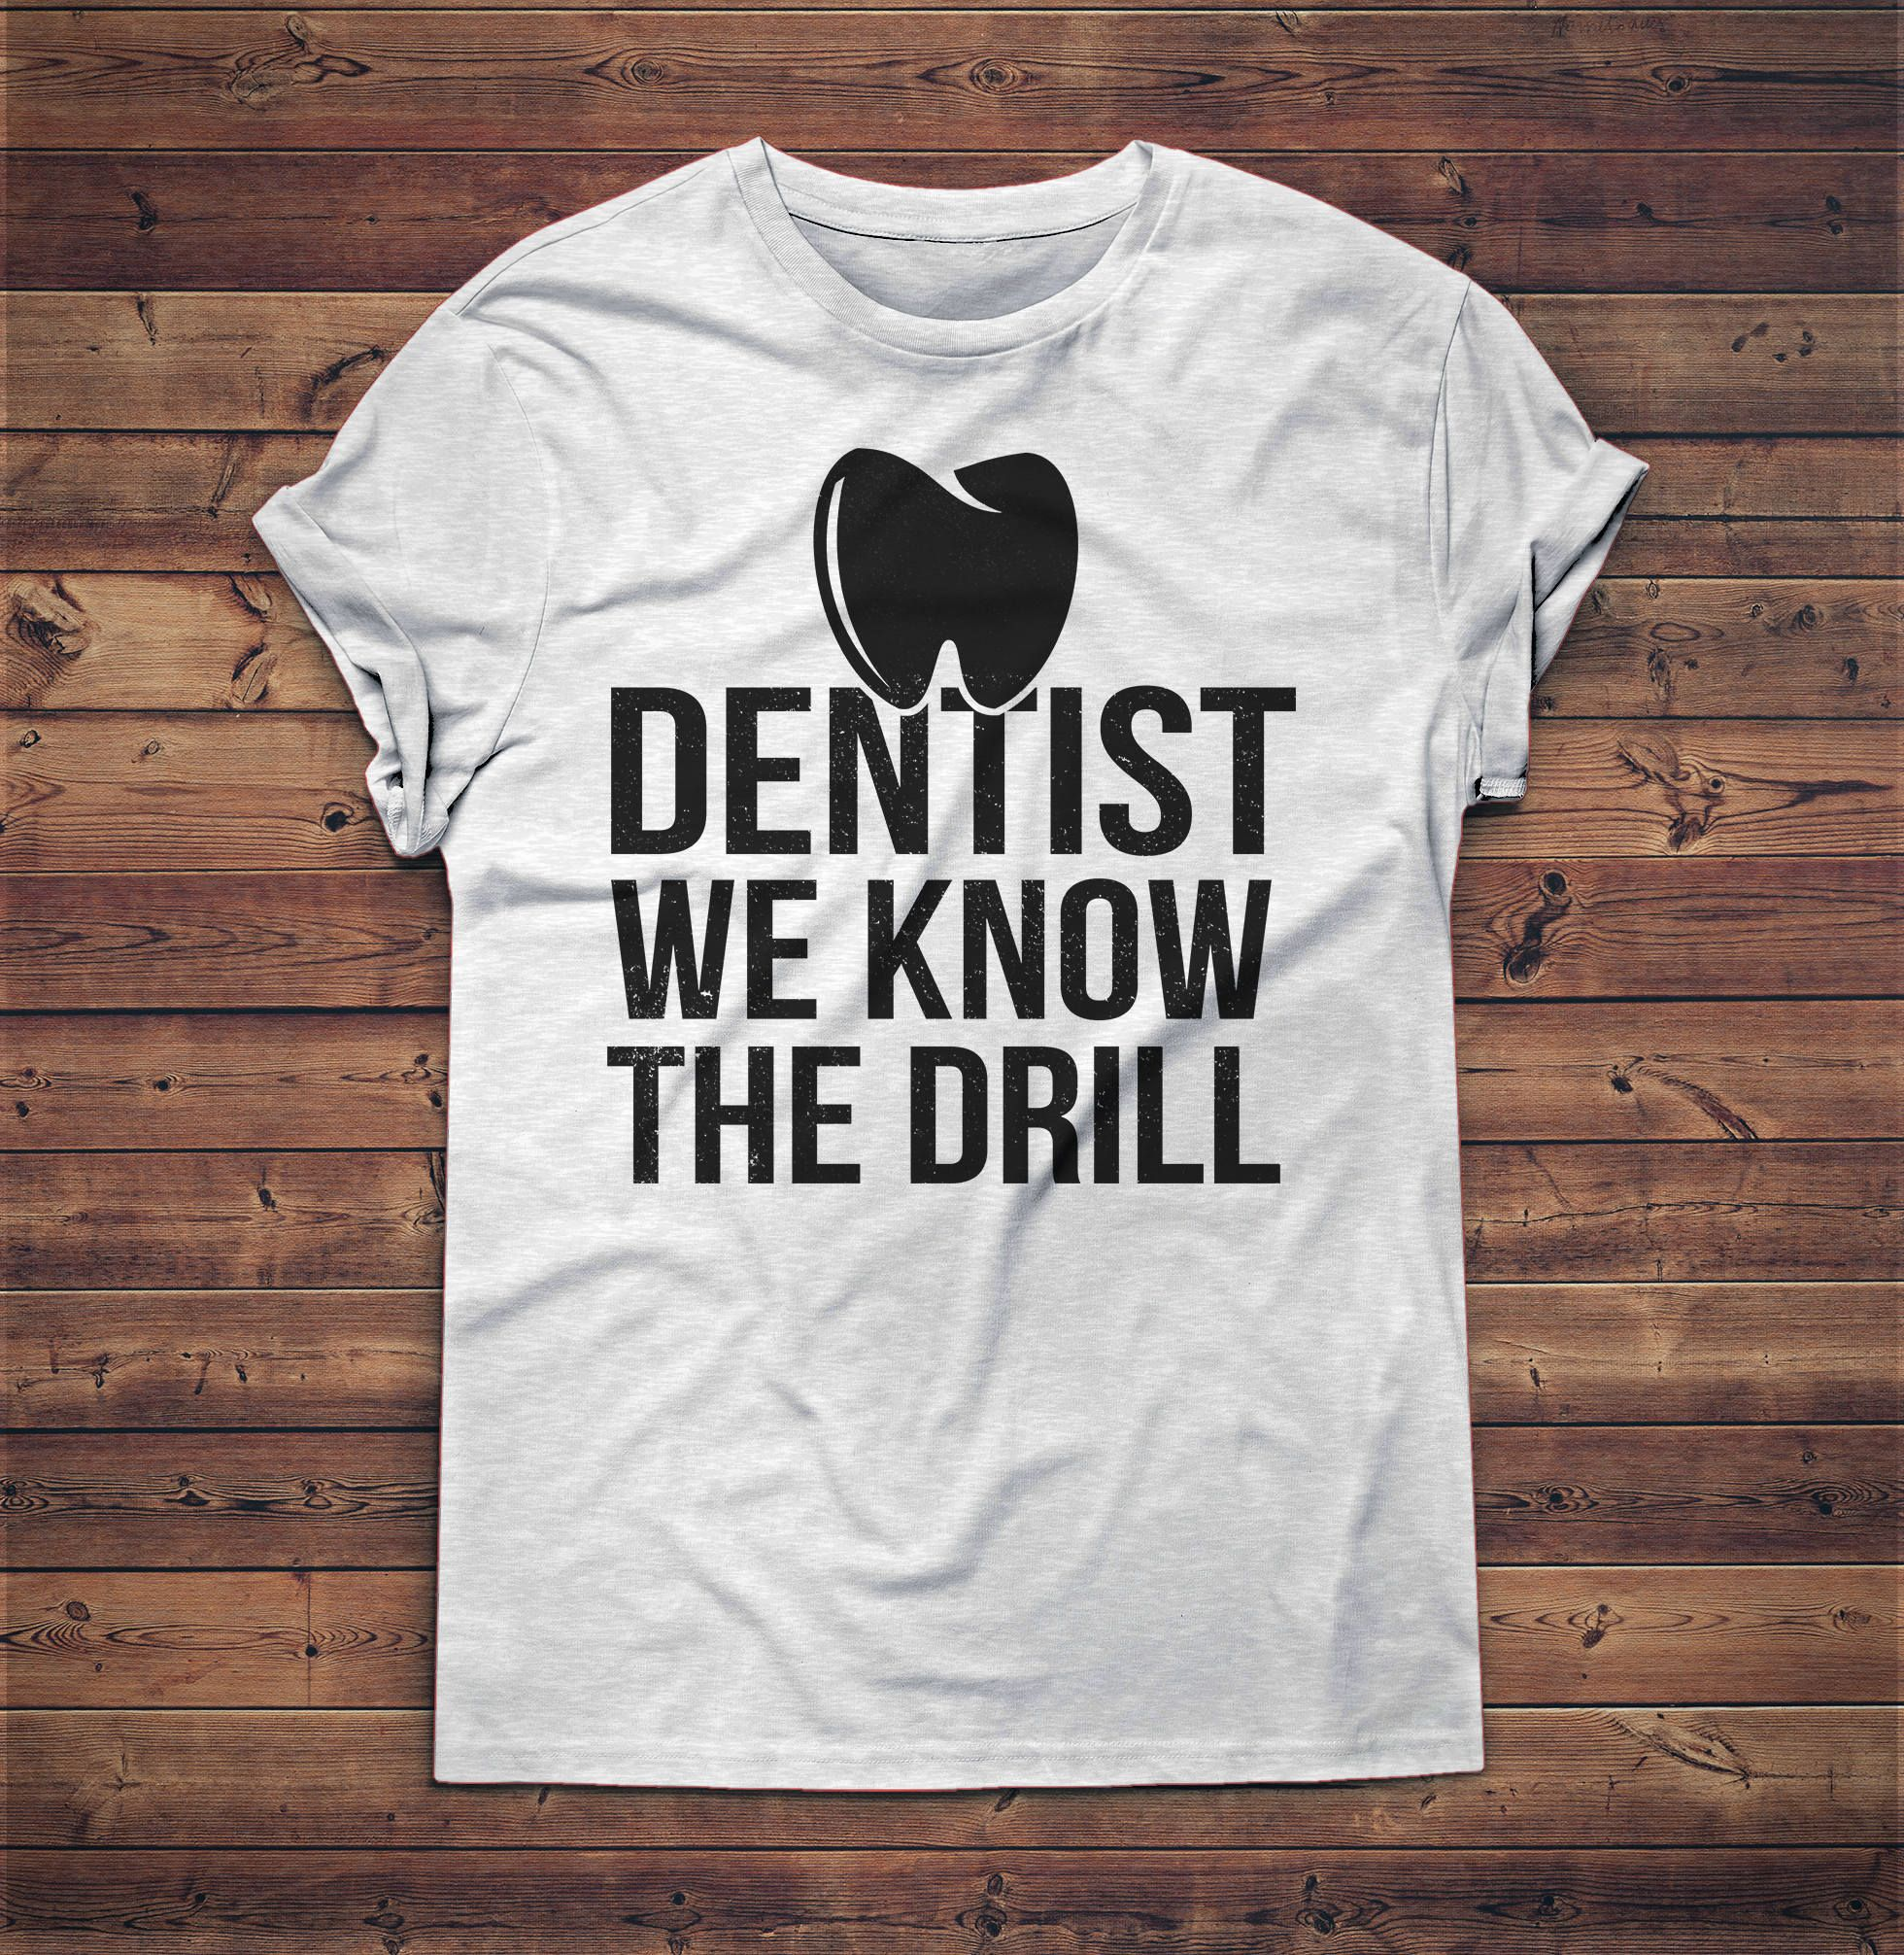 96bbf11bed Dentist We know The Drill Shirt - Dental Student Gifts - Funny Dentist Gifts  - Dentist Gift, Dental Hygienist, Tooth Fairy, Dentist Gifts, Dentist ...